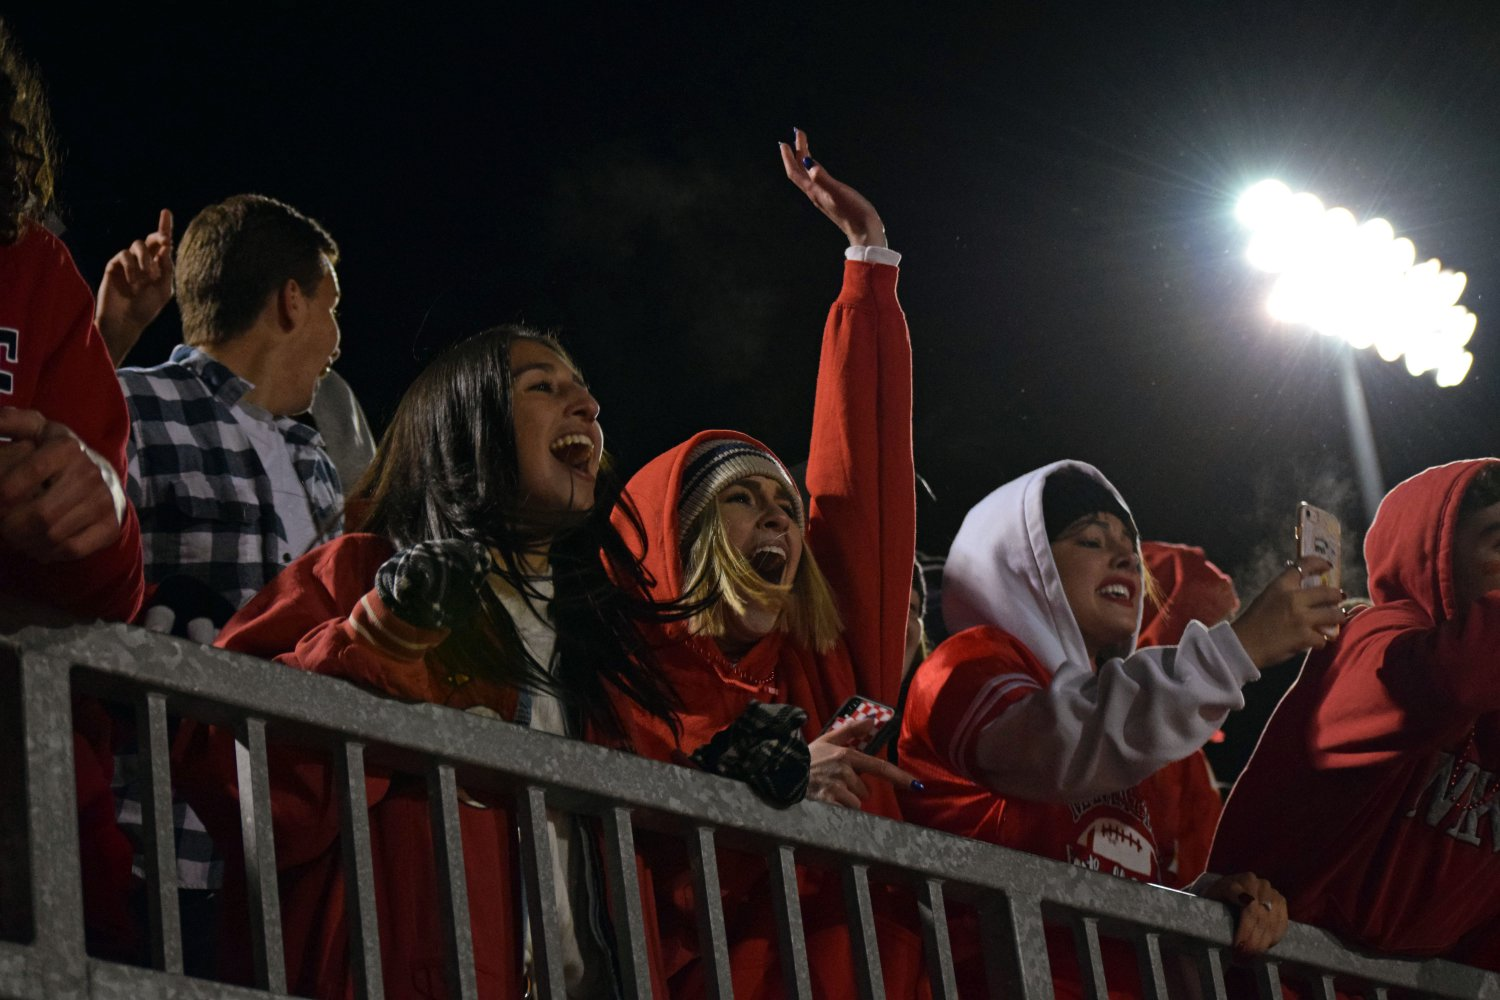 Seniors Mady McCollough and Madeline Crocker cheer in voctory after the MHS Indians scored the final point of the rivalry game against Junction City. The student section stayed loud and proud during the high-stakes game. Students like Crocker and McCollough bundled up and dressed in red to stay warm and school spirited. Photo by Hailey Eielrt